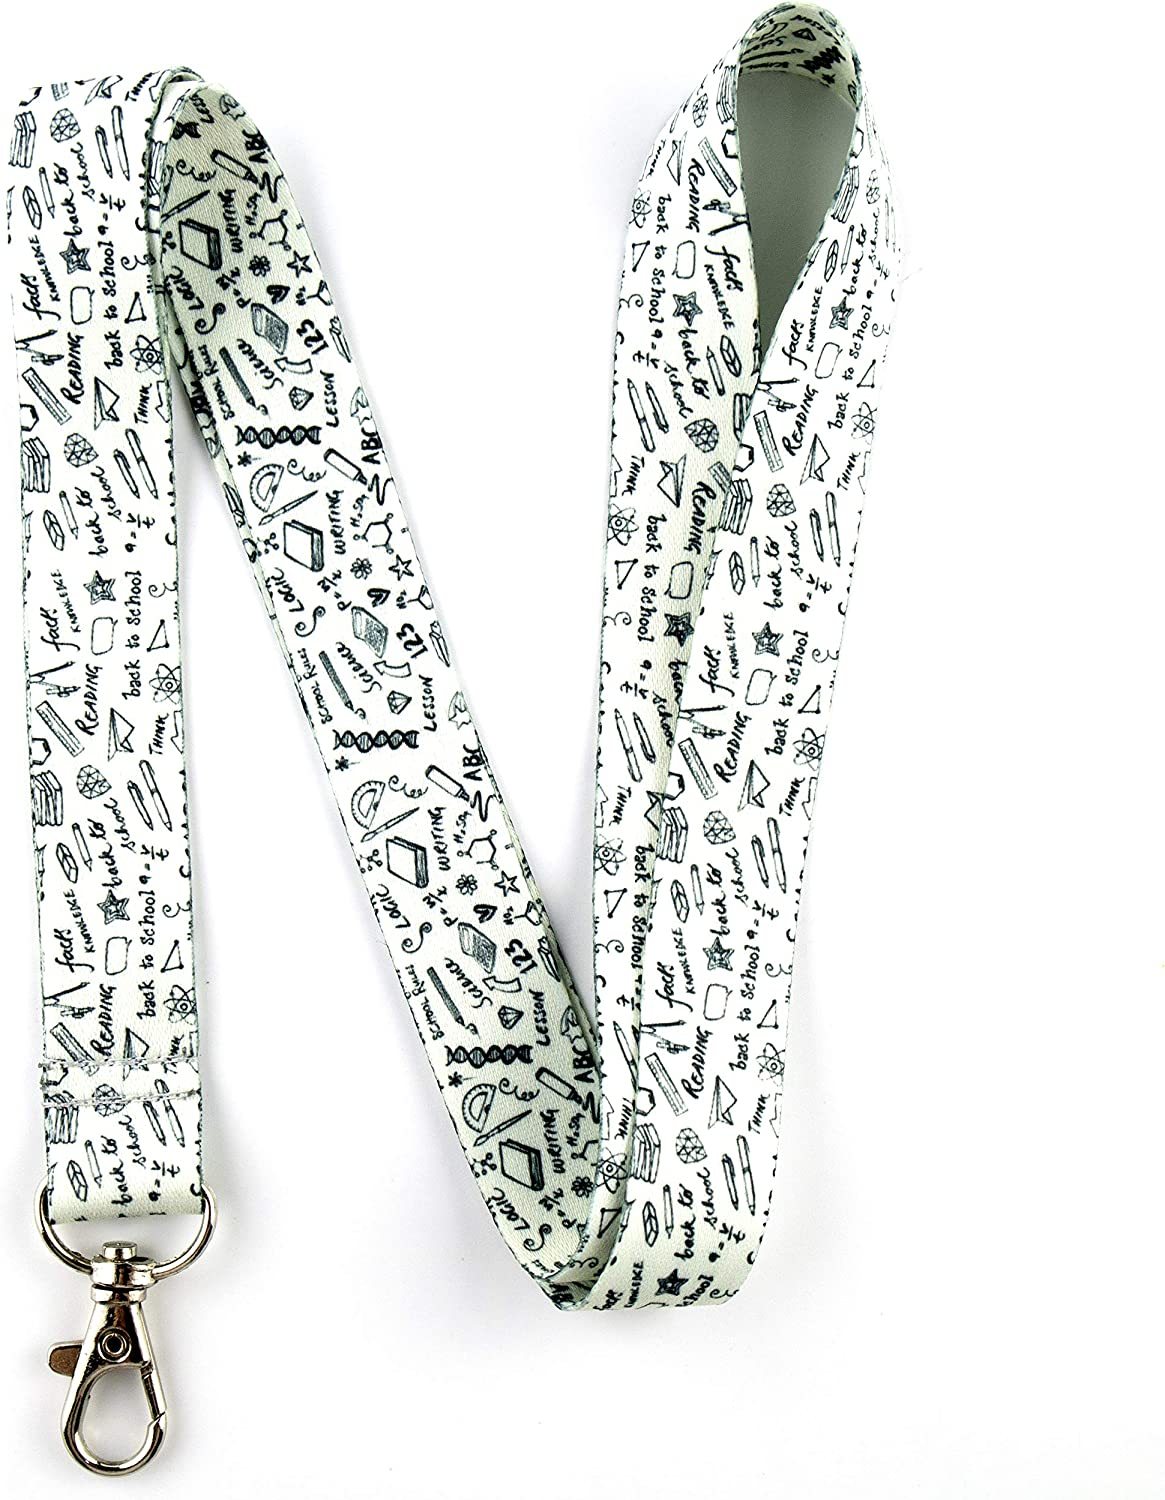 vets Perfect for nurses librarians ID card holder keychain teachers school students. Gray yellow floral 100/% cotton fabric Lanyard